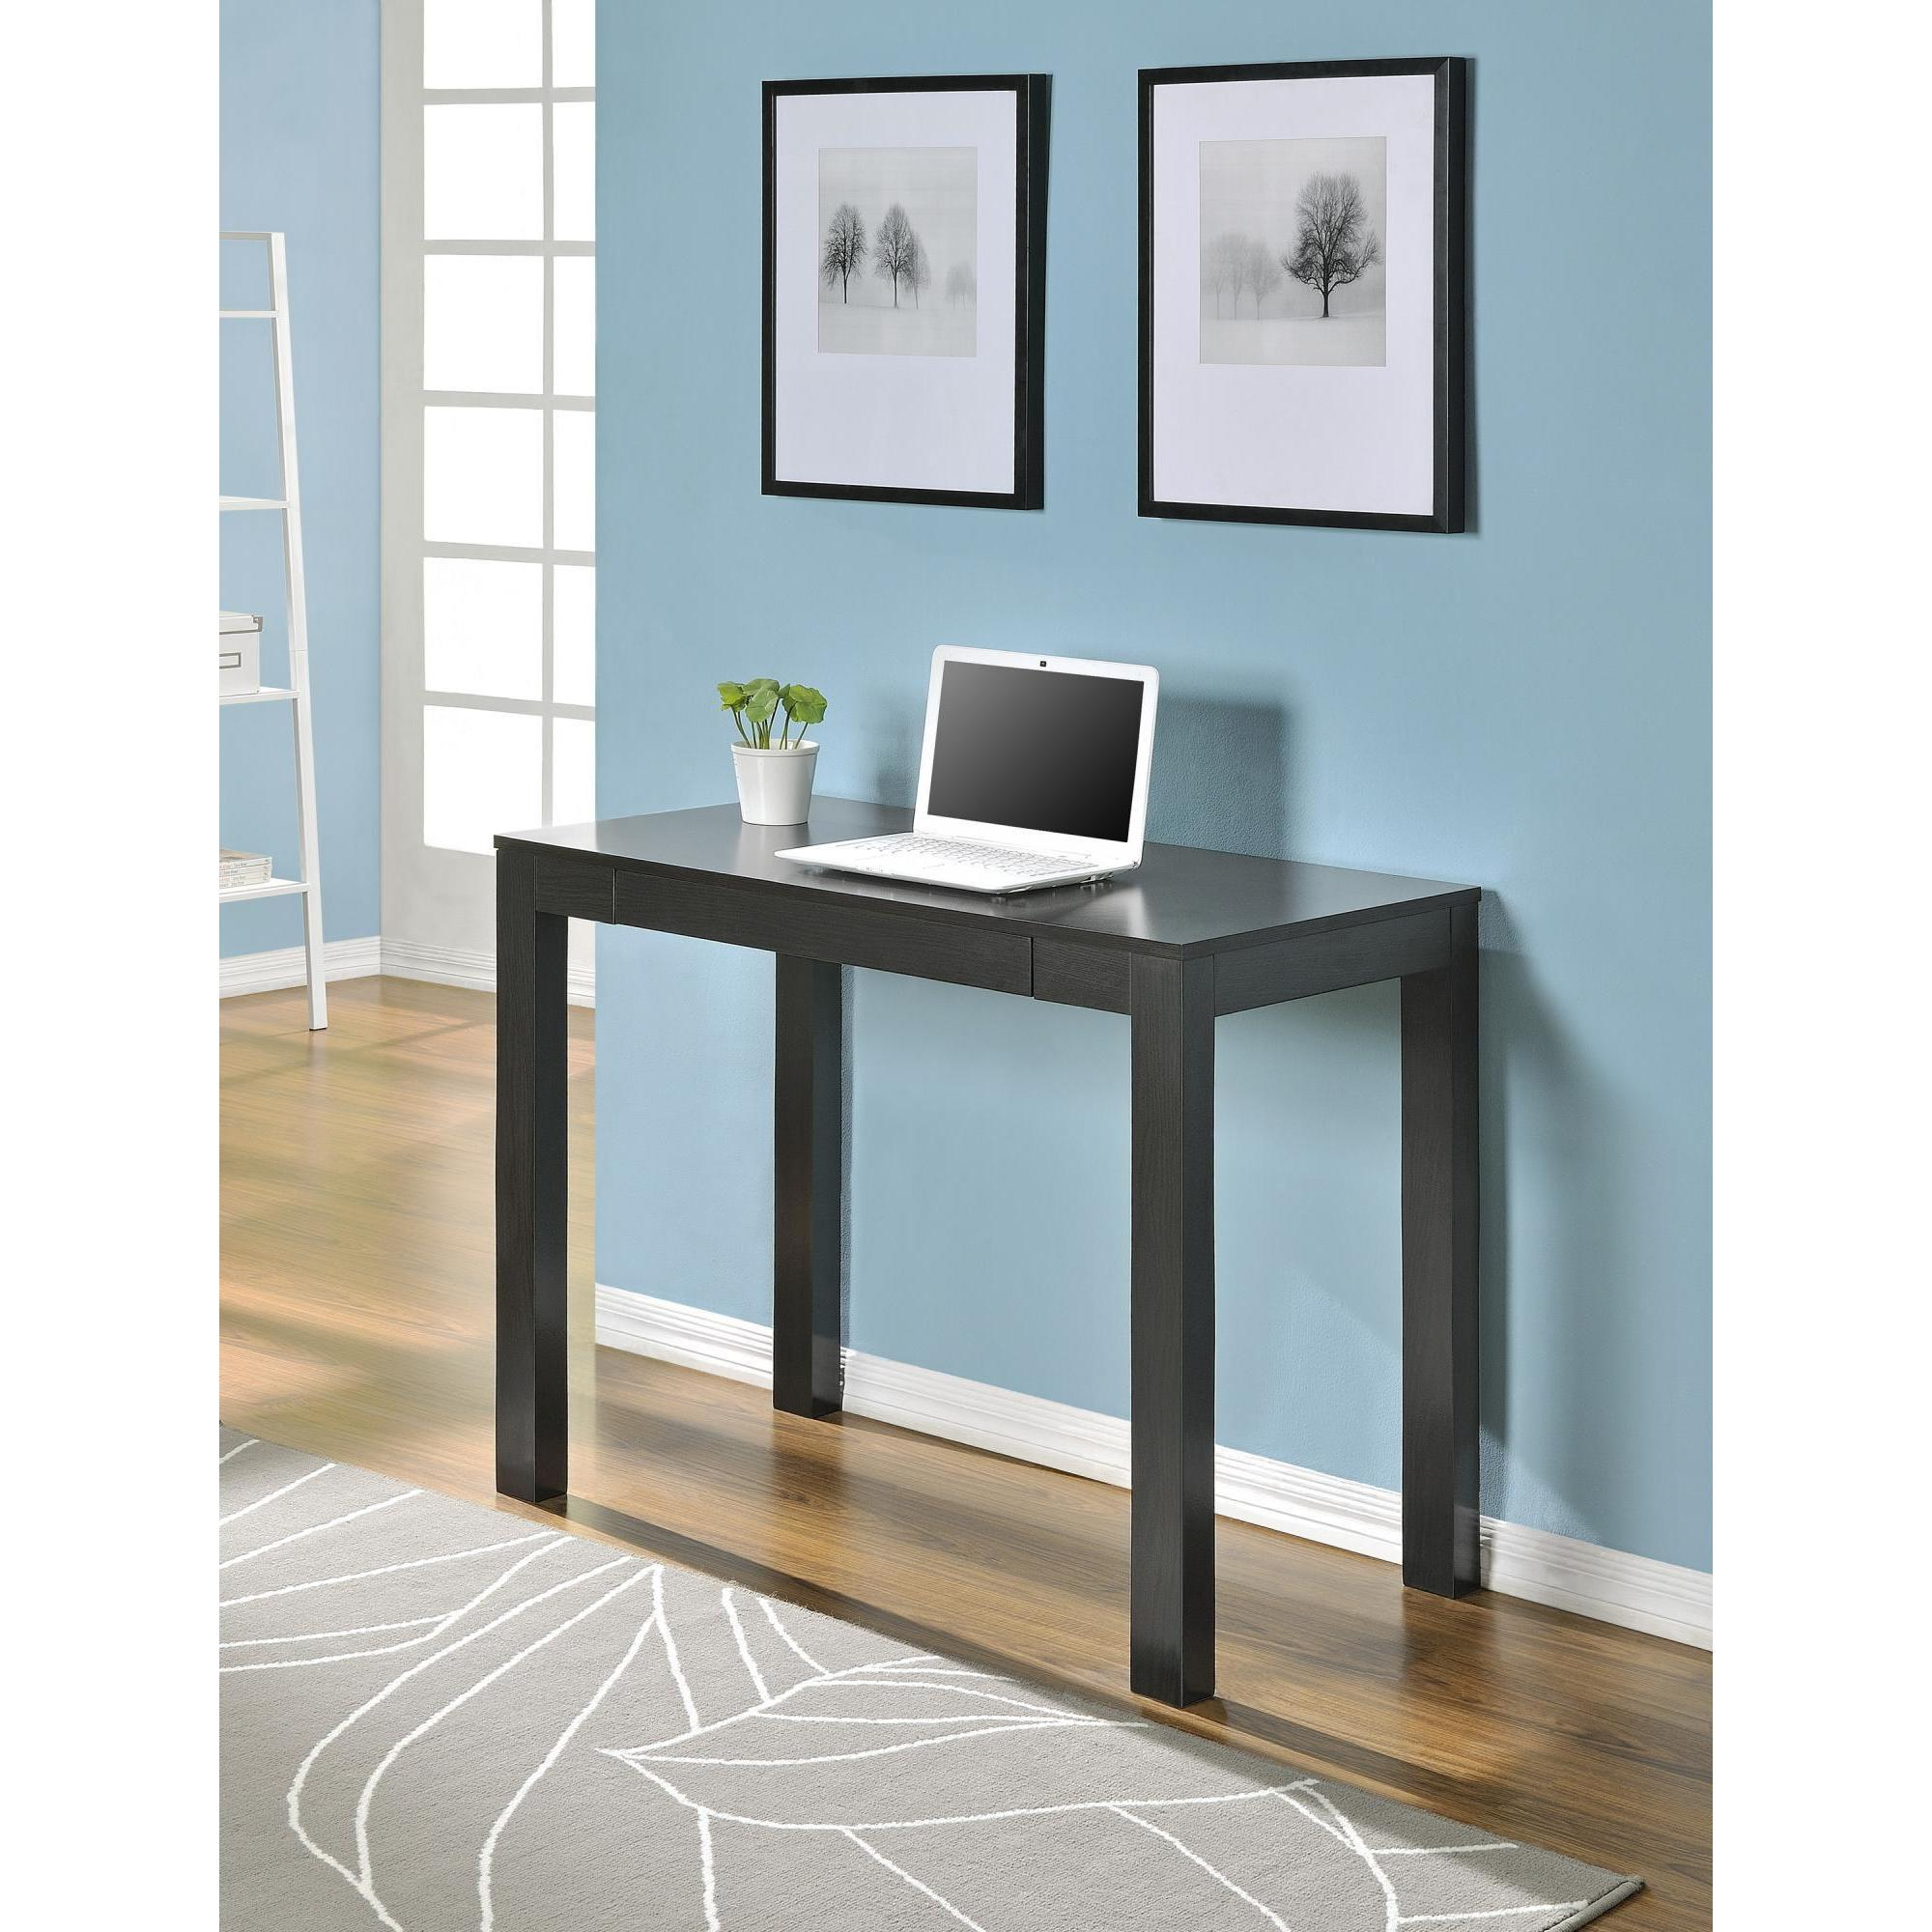 teal resplendent and capri hai s bali pantone in blue desk cabinet crow the